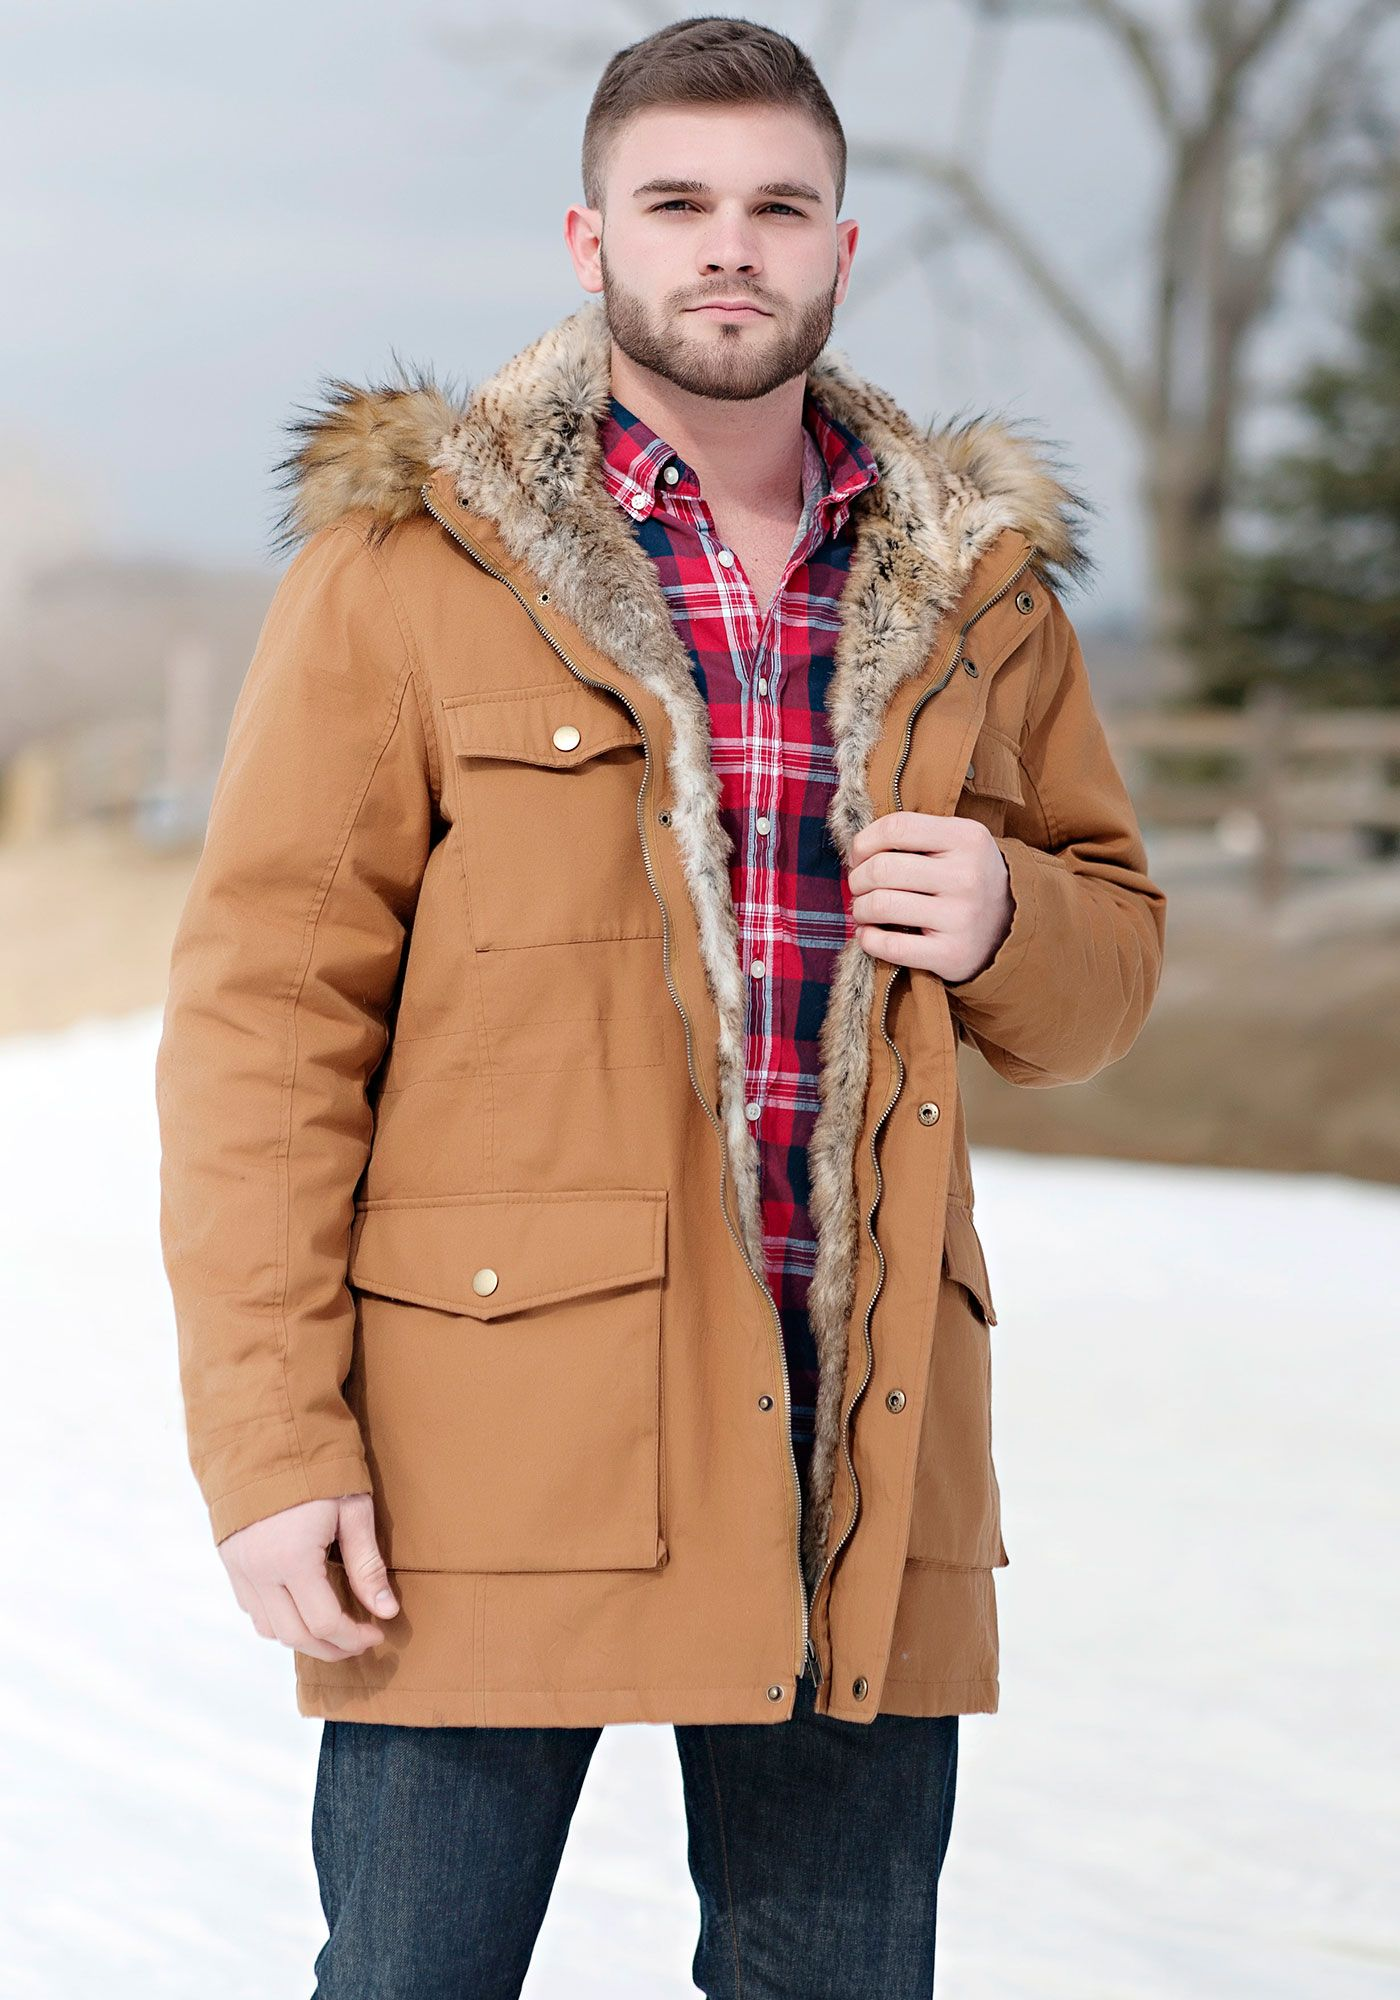 Men's Tobacco Military-Style Faux Fur-Lined Parka | Fur, Military ...